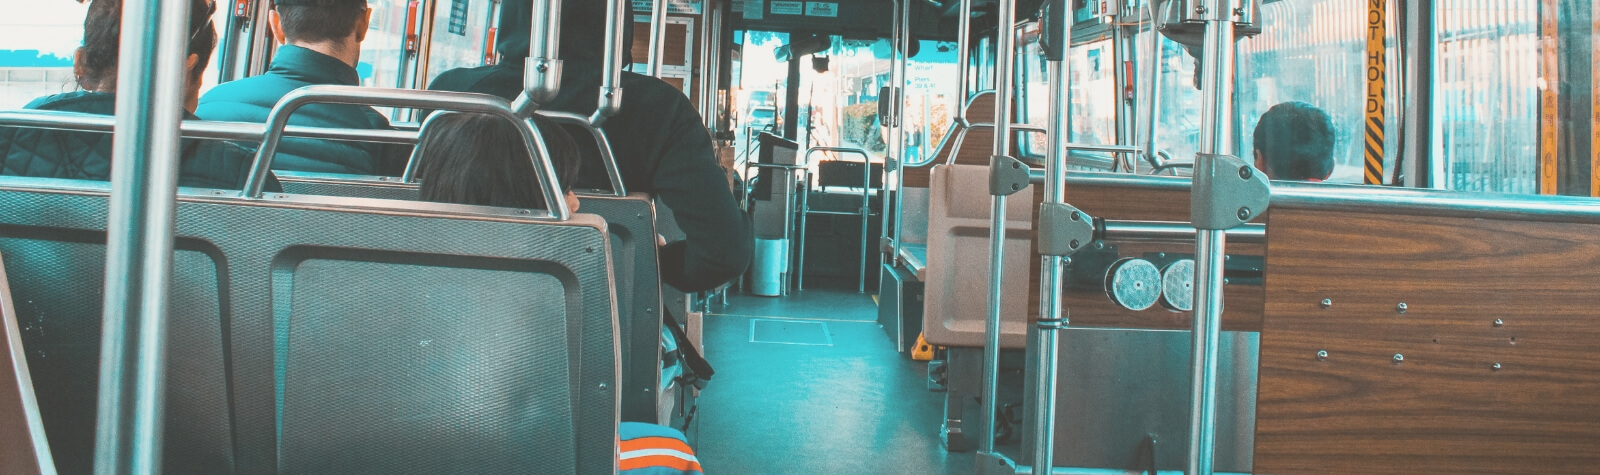 The day I rode an entire public bus route